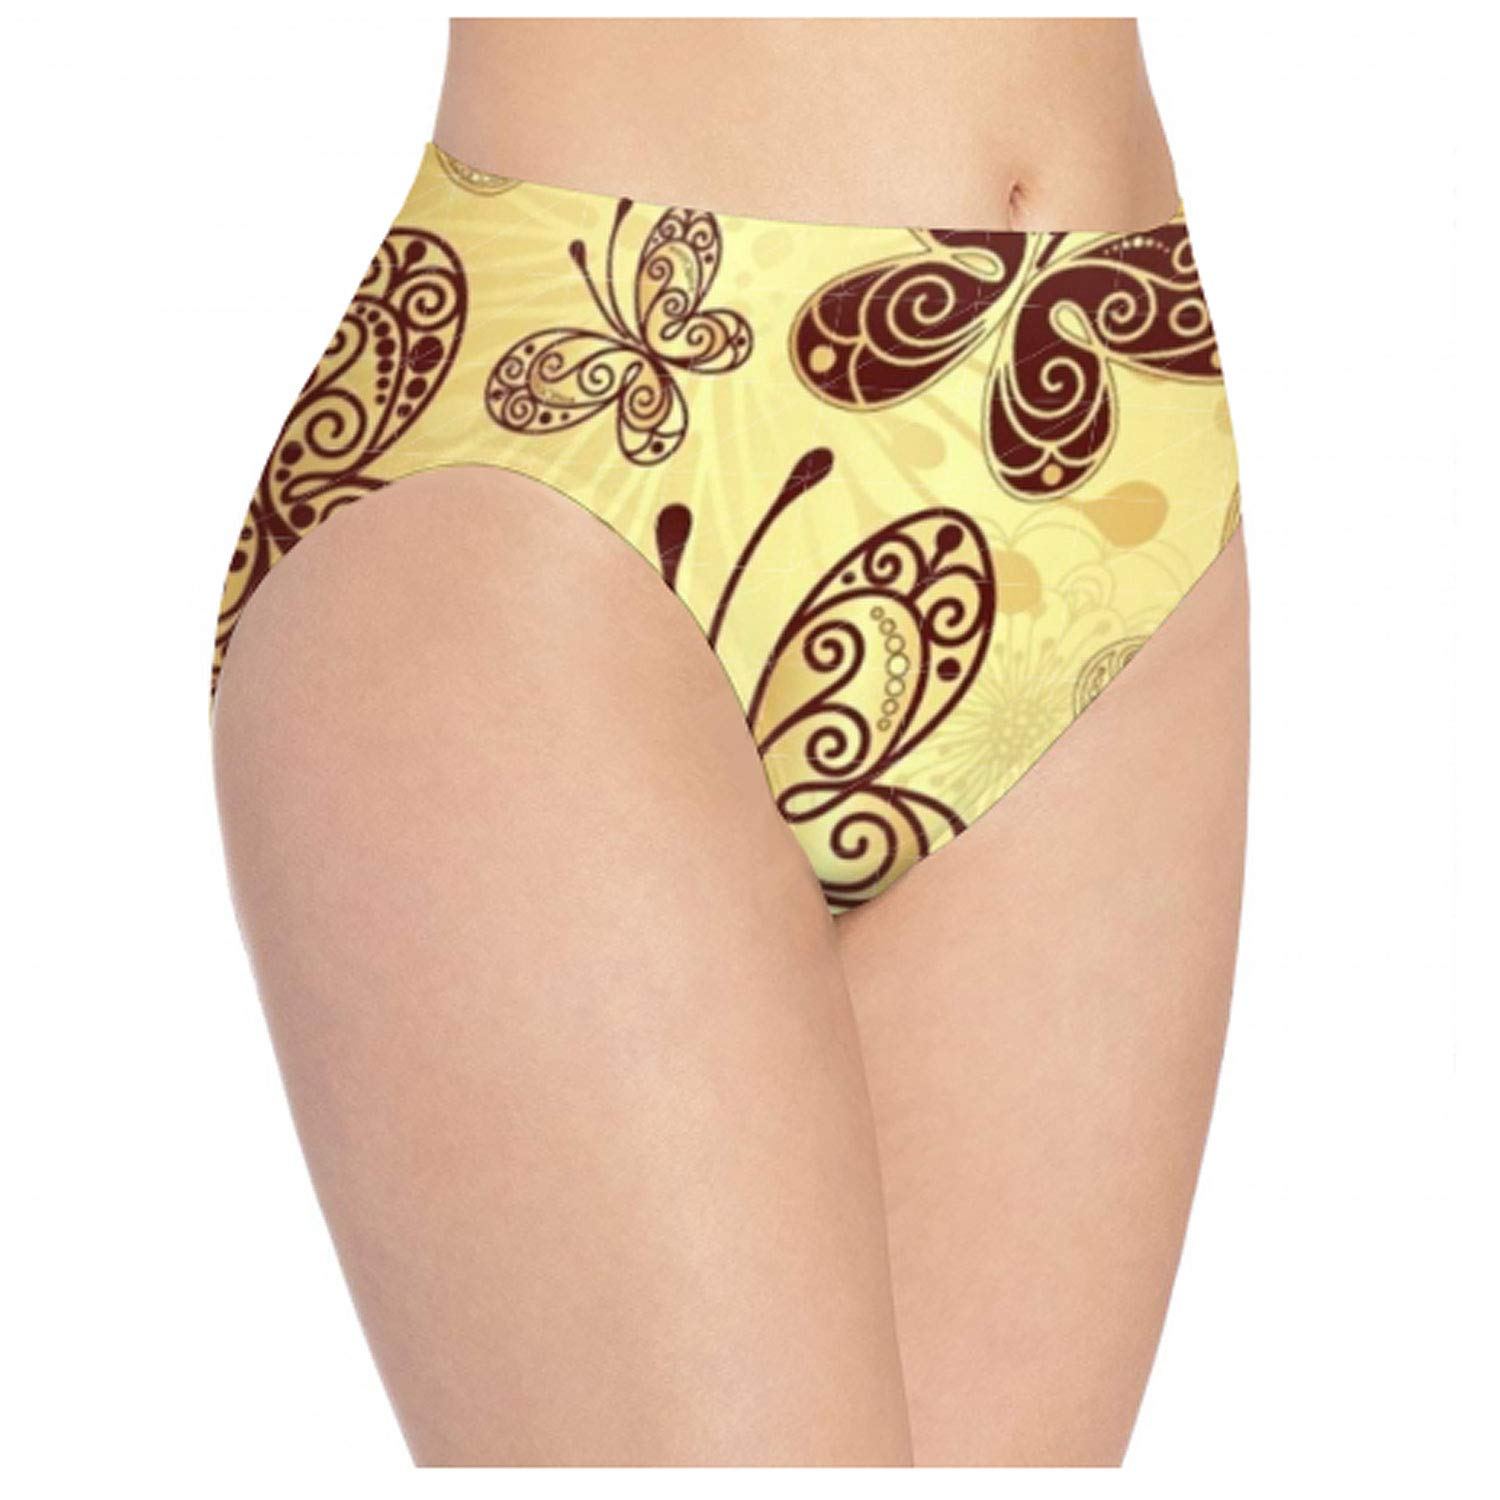 Pitbull Mom Gold Low Waist Seamless Underwear for Women Smooth Panties Stretch Briefs